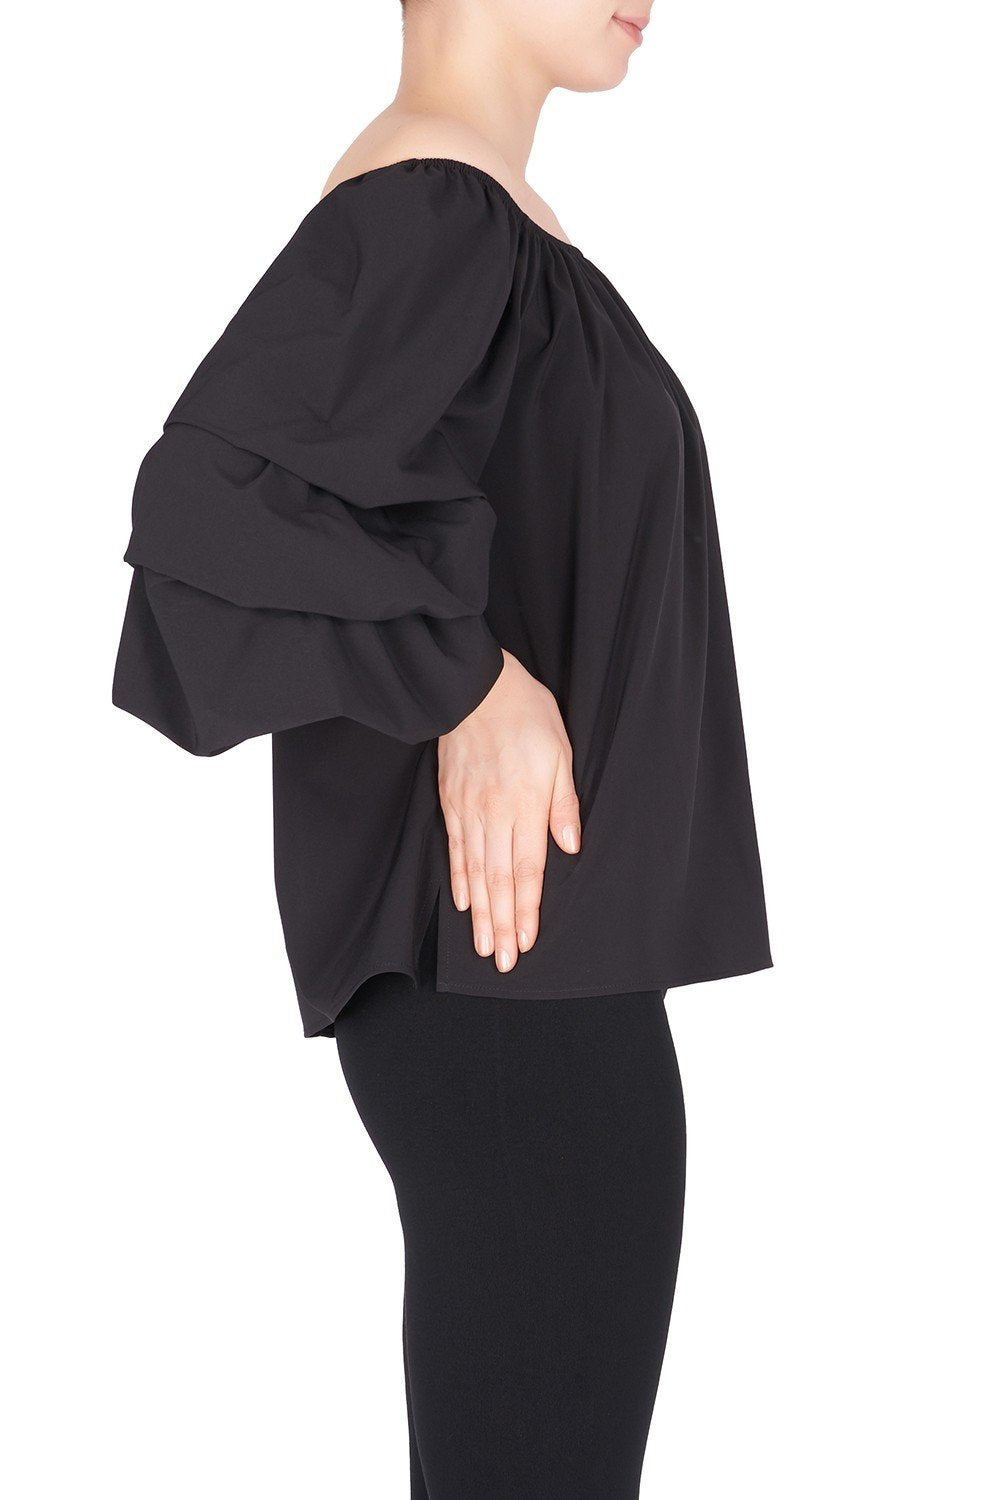 Image of Joseph Ribkoff Top Style 183423 Black Best Price On Sale